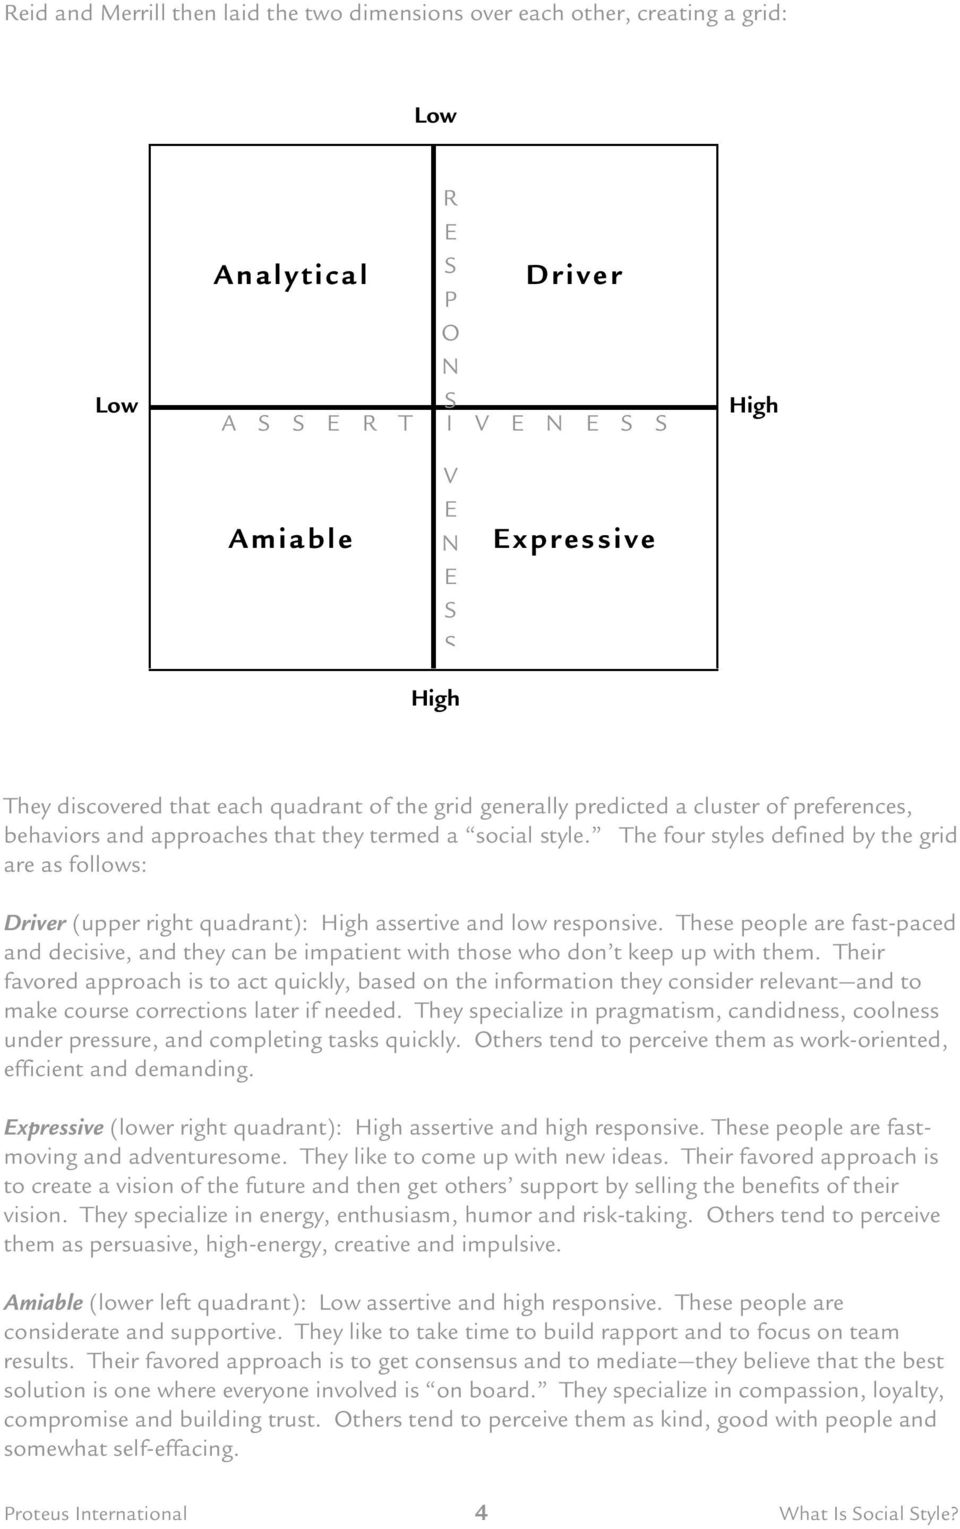 The four styles defined by the grid are as follows: Driver (upper right quadrant): assertive and low responsive.